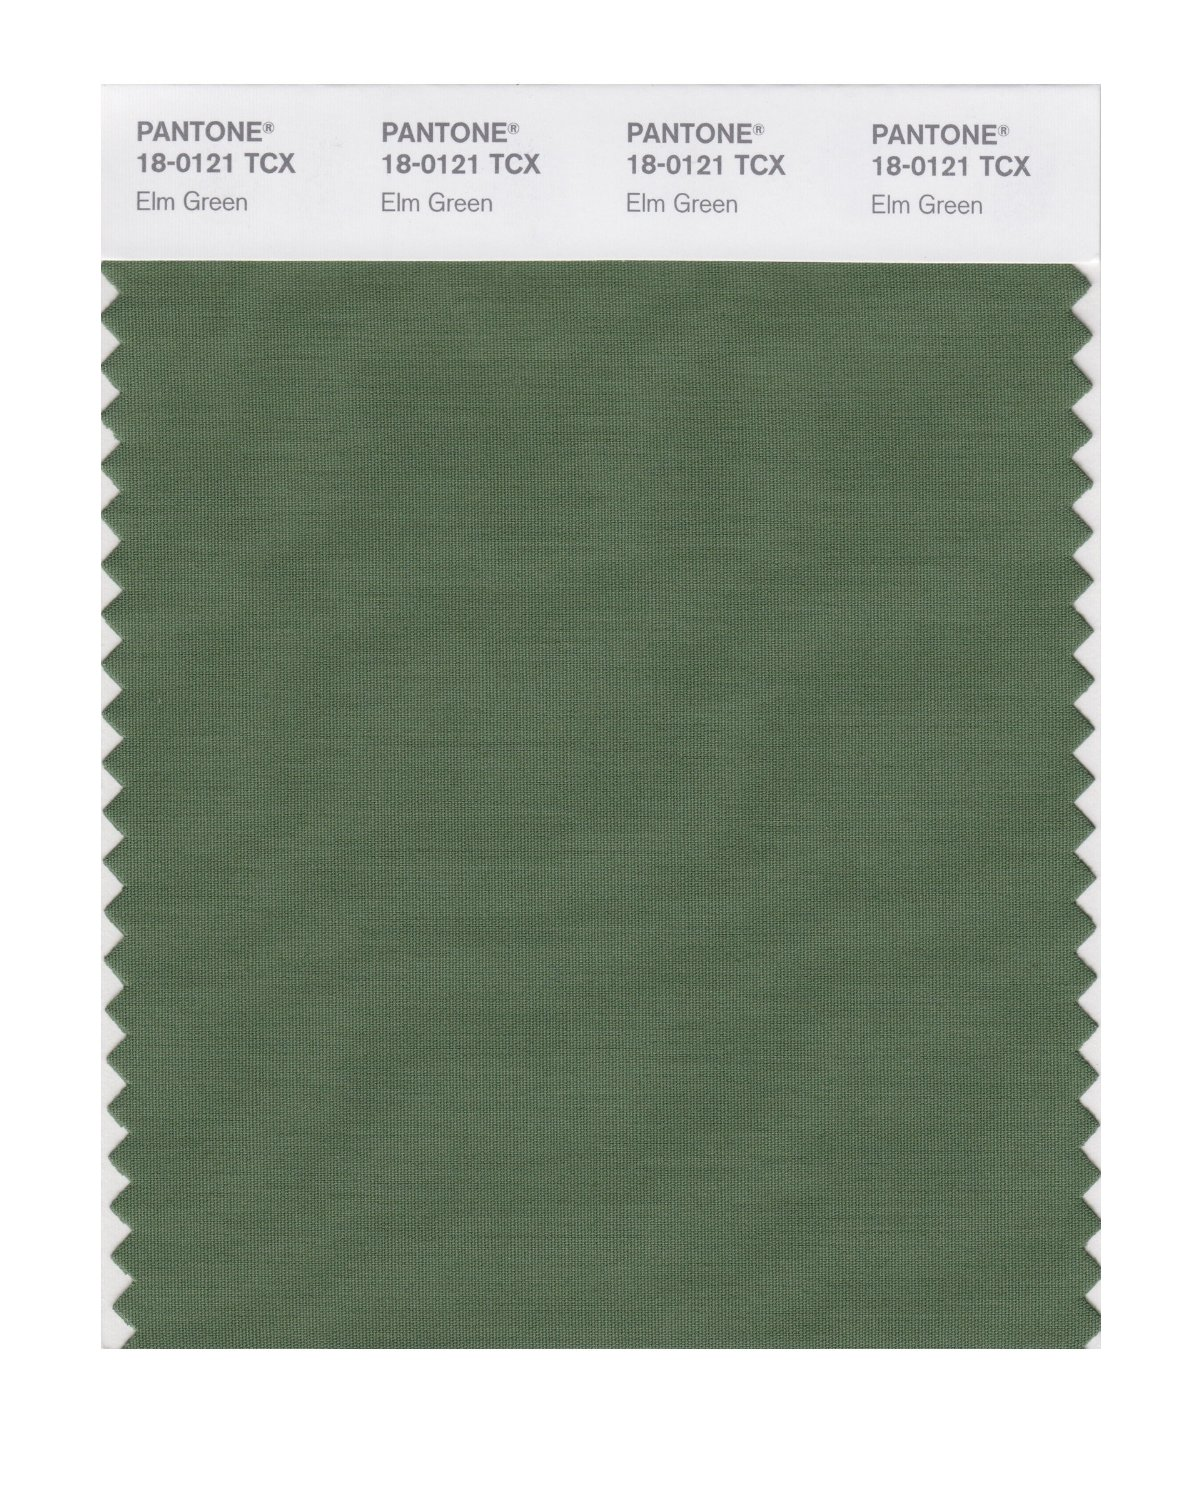 Pantone Smart Swatch 18-0121 Elm Green